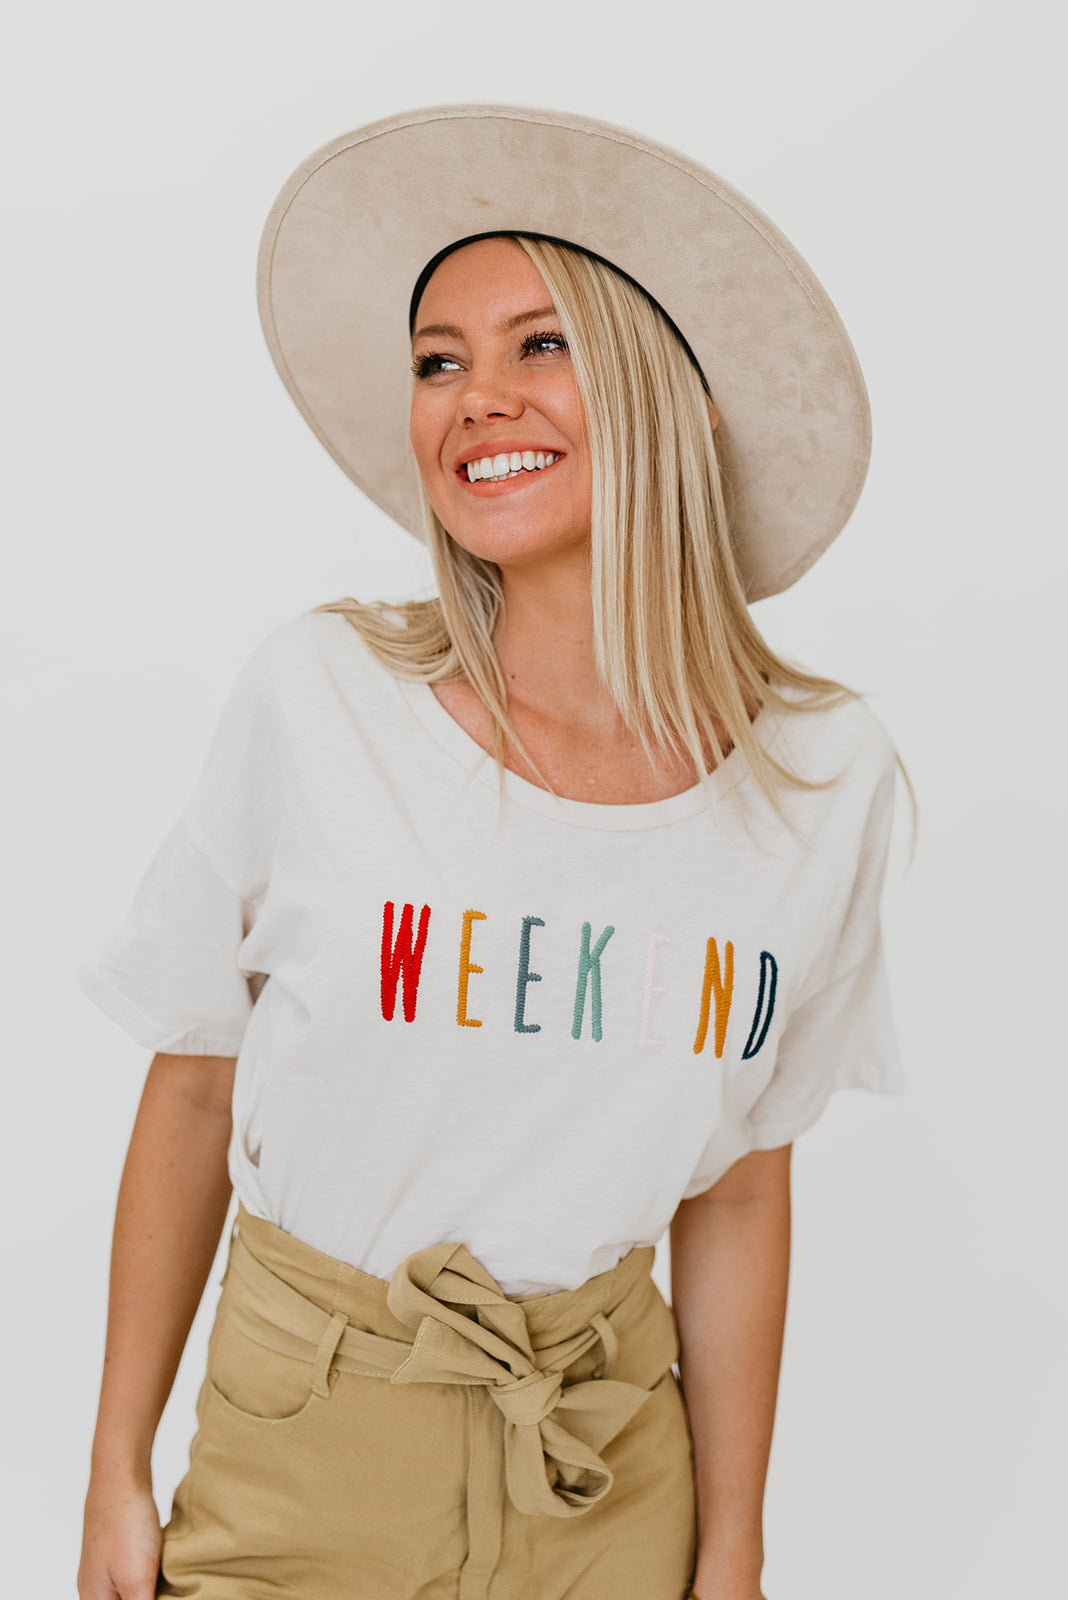 THE WEEKEND EMBROIDERED SHIRT IN CLAY